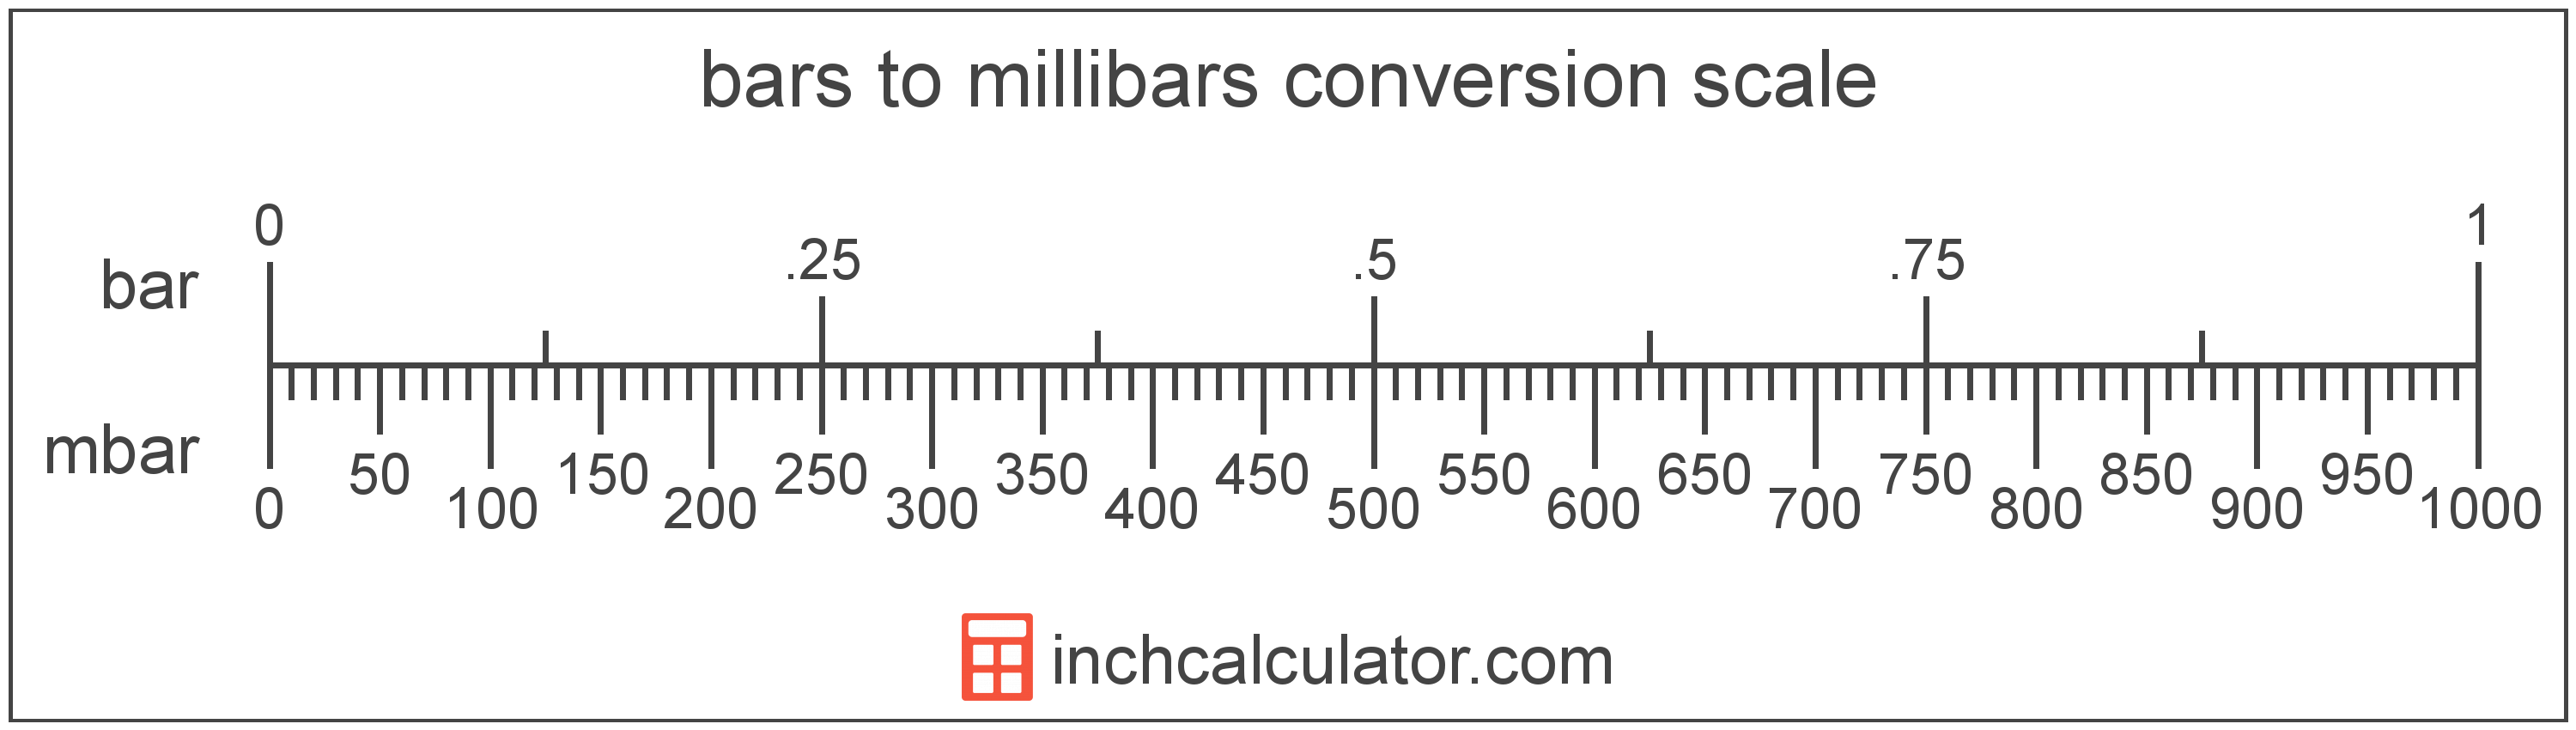 conversion scale showing bars and equivalent millibars pressure values